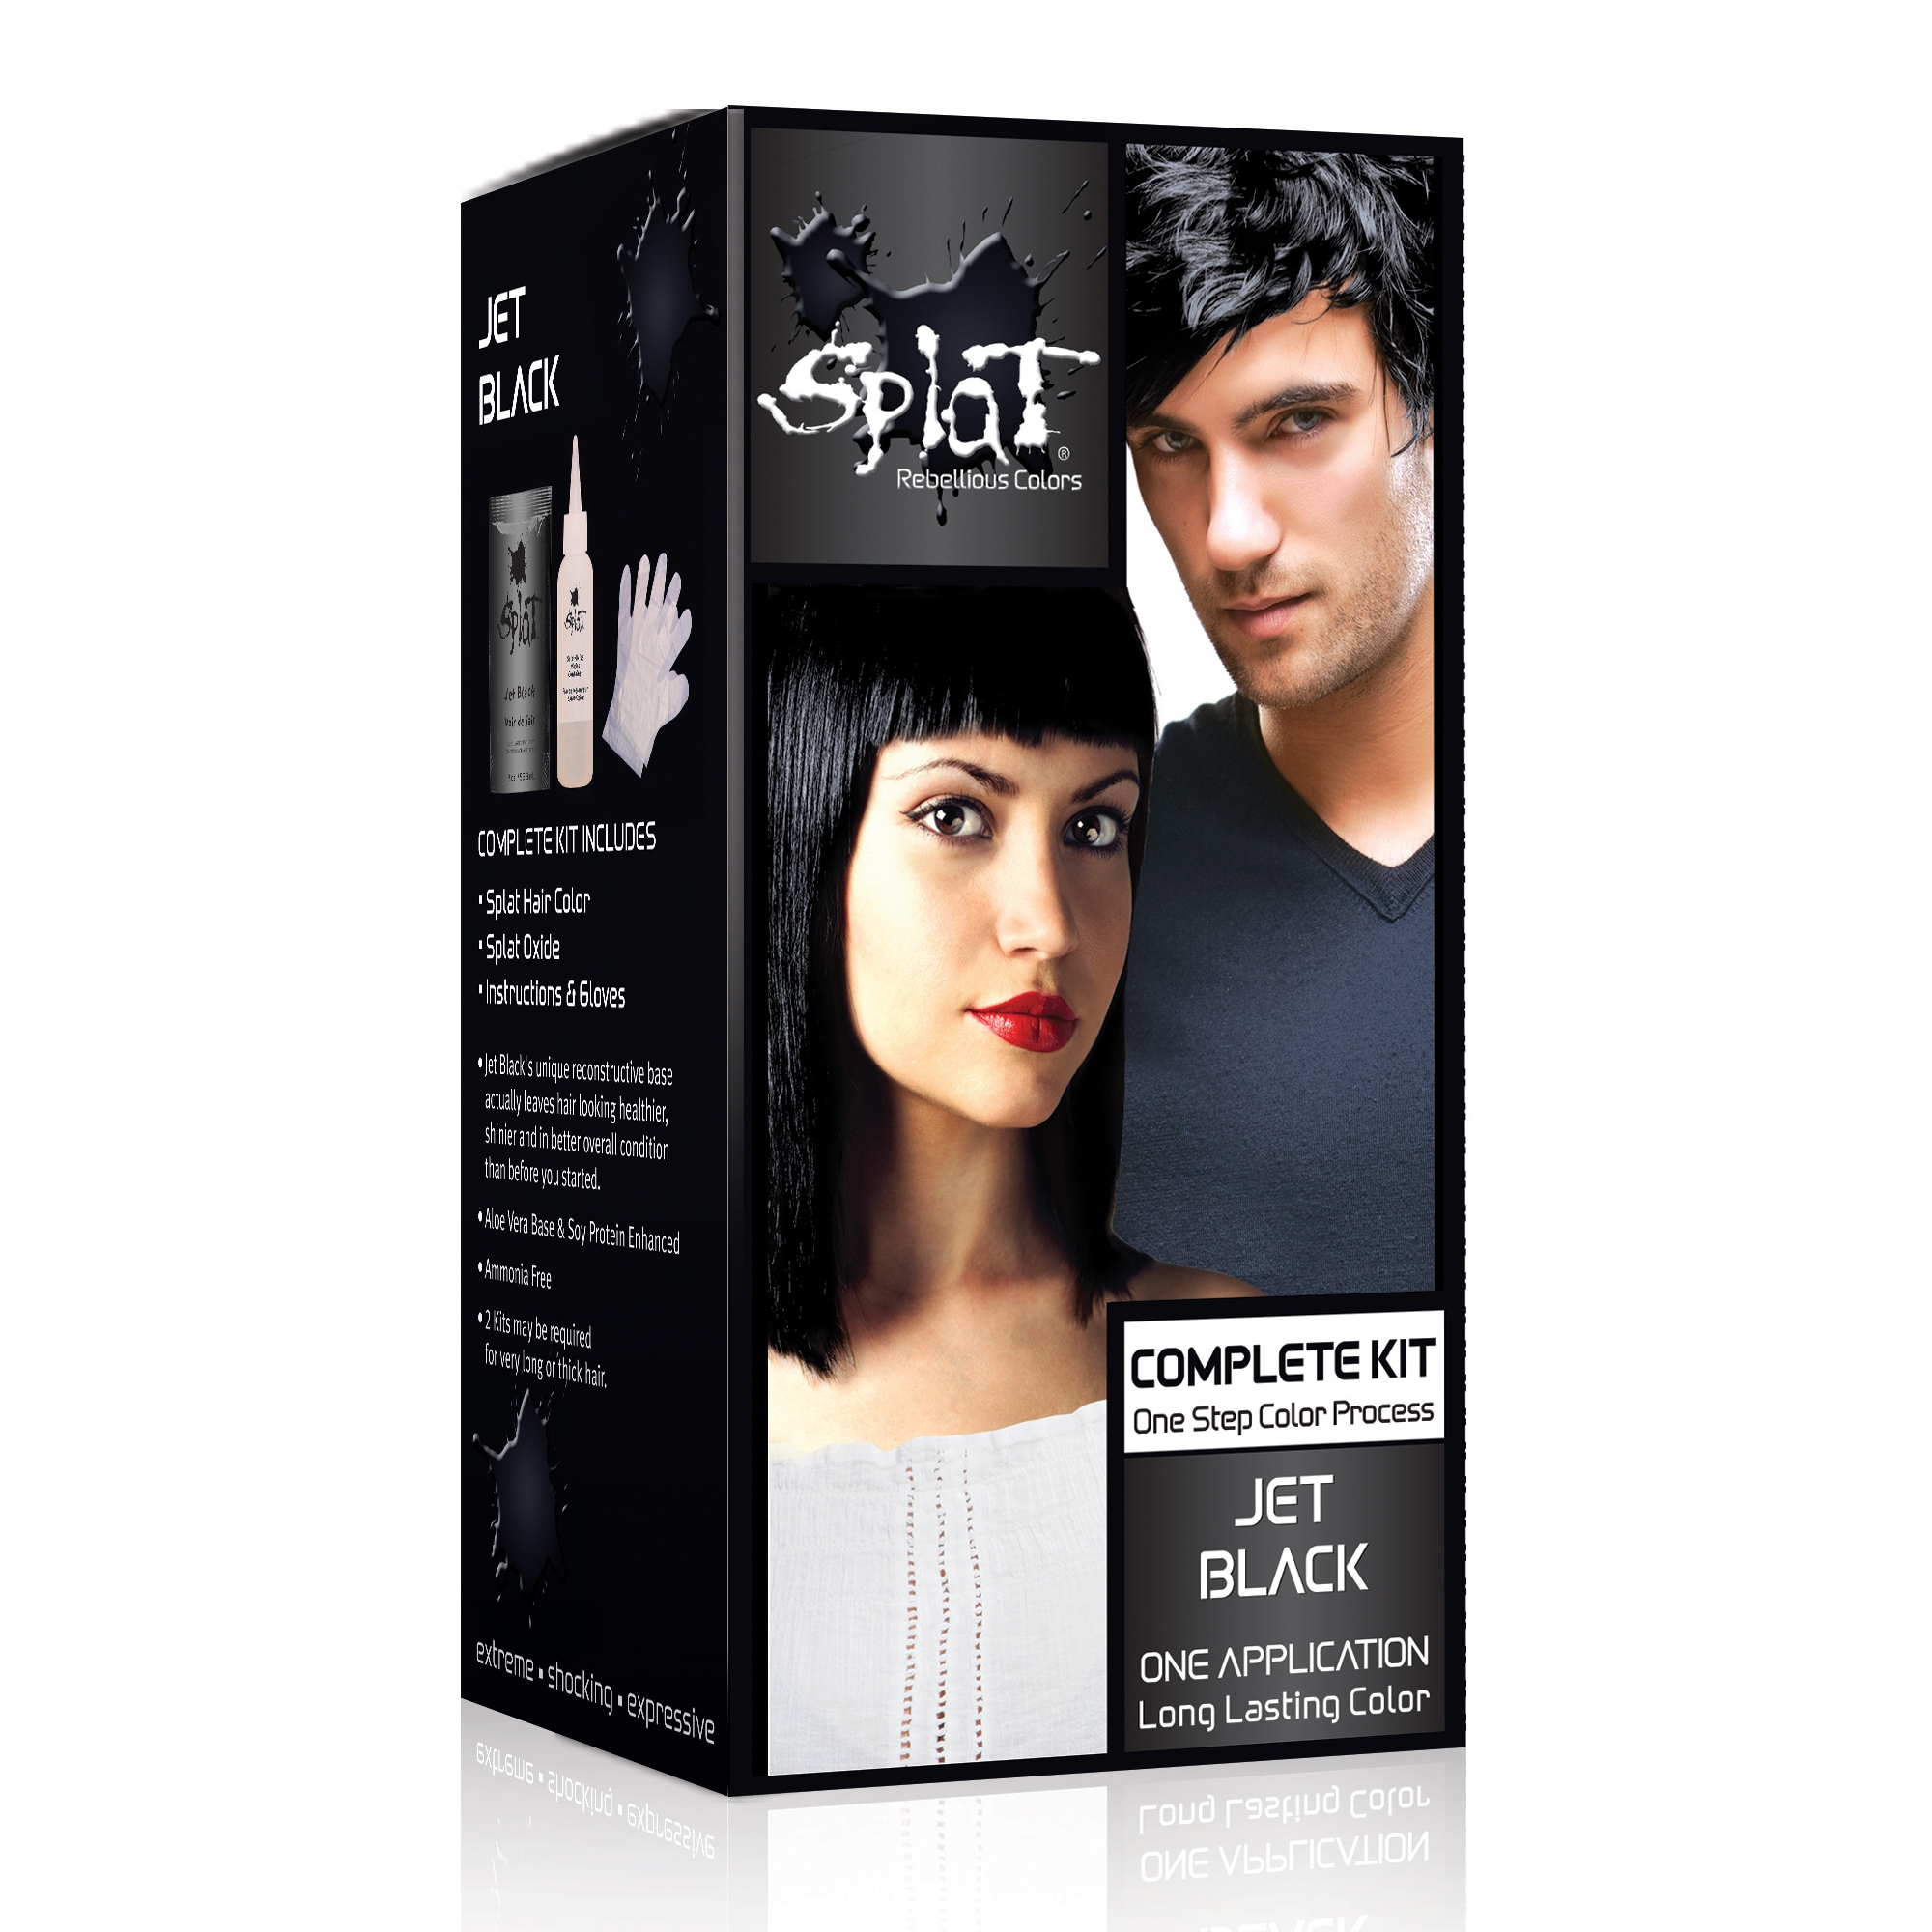 Splat 30 Wash Hair Dye Kit, Semi-Permanent, Blue Envy Hair Color ...